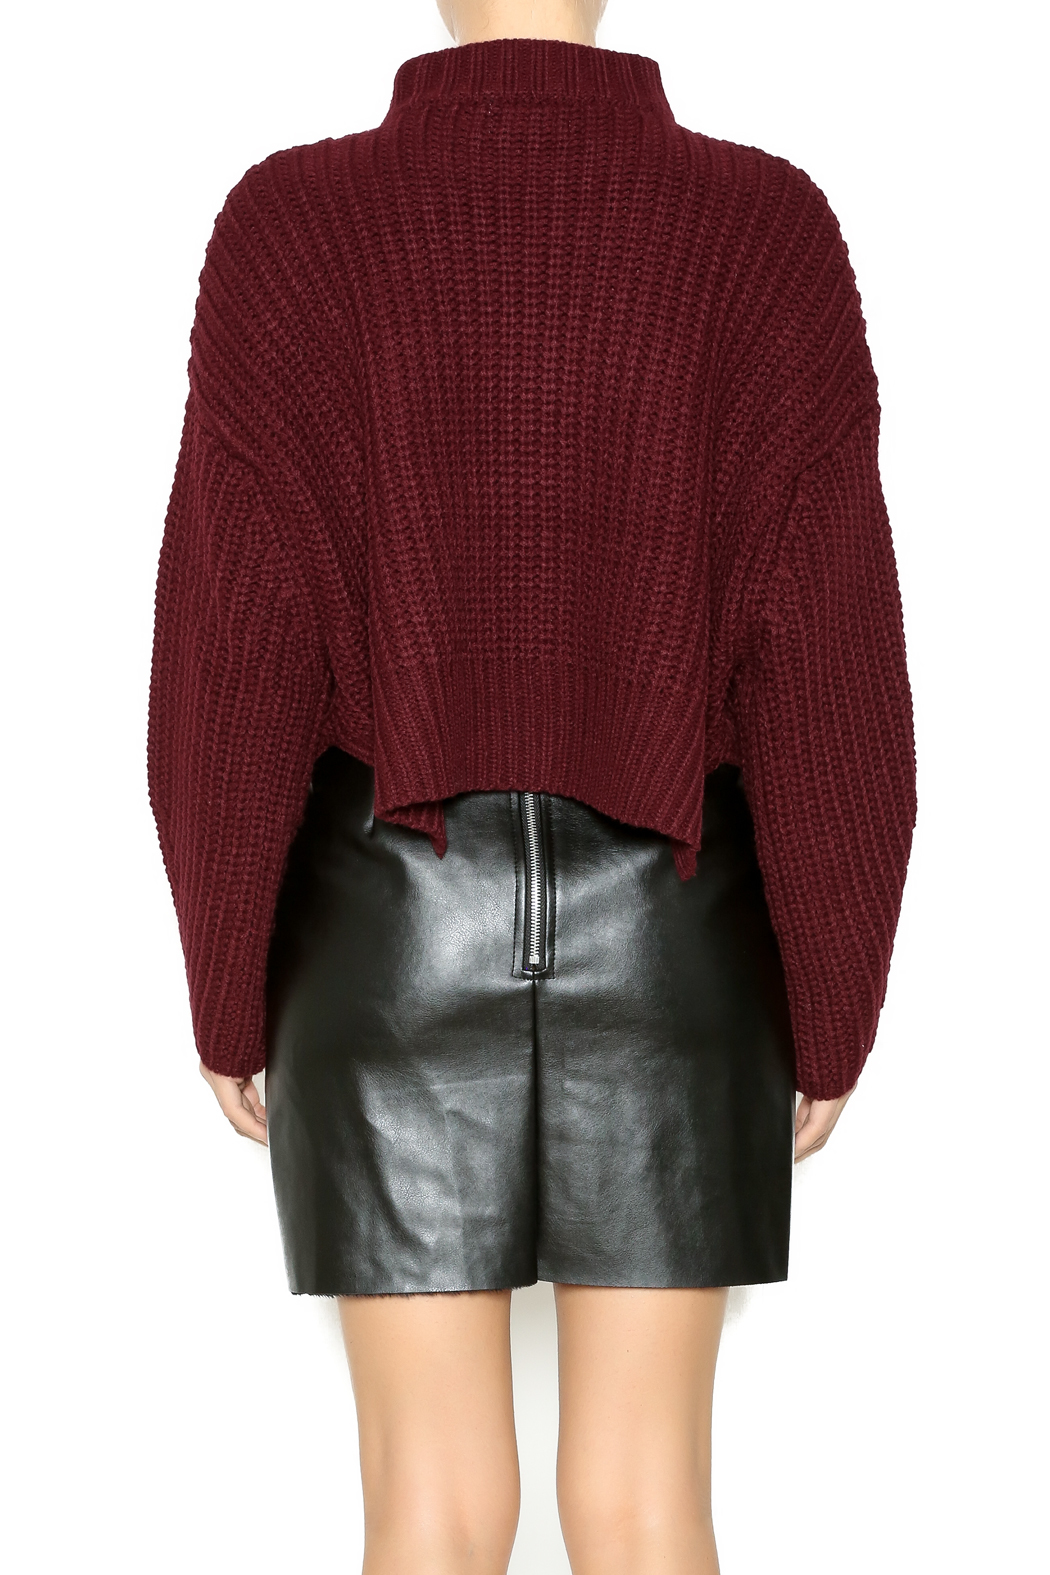 Gracia Short Sweater - Back Cropped Image